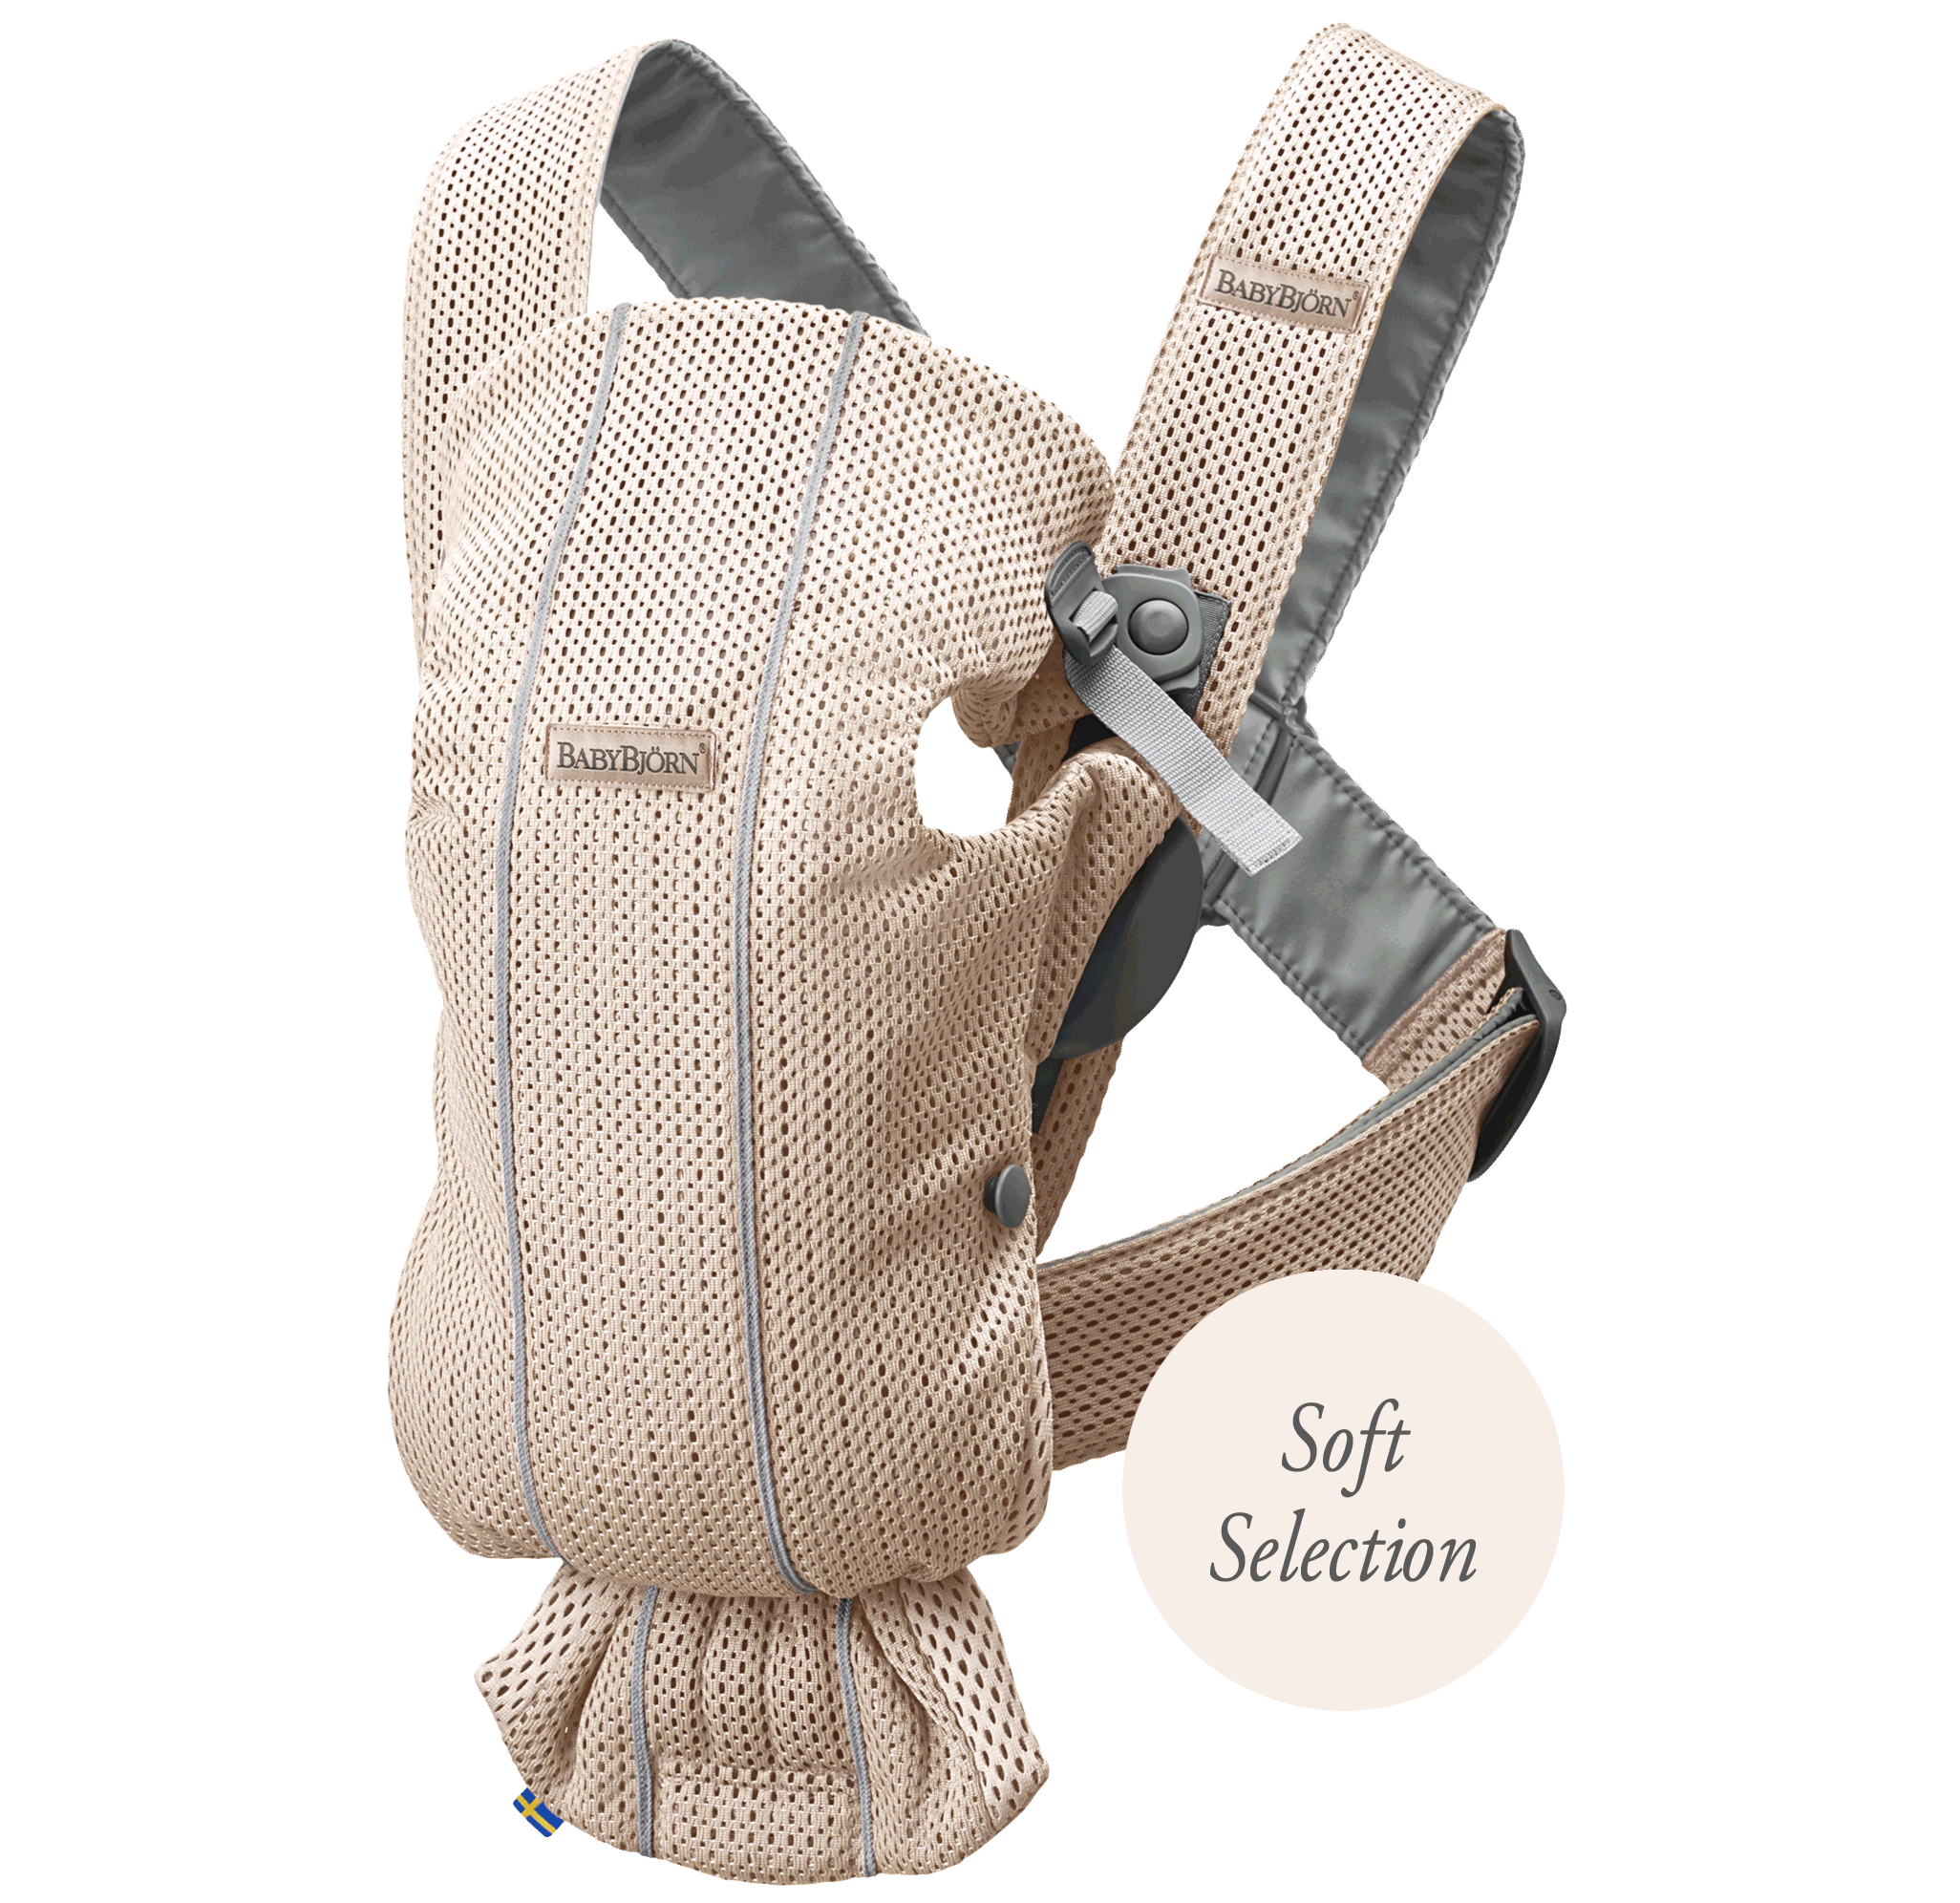 Baby Carrier Mini Pearly Pink 3D Mesh, Soft Selection, a small and easy to use Baby Carrier for newborns - BABYBJÖRN